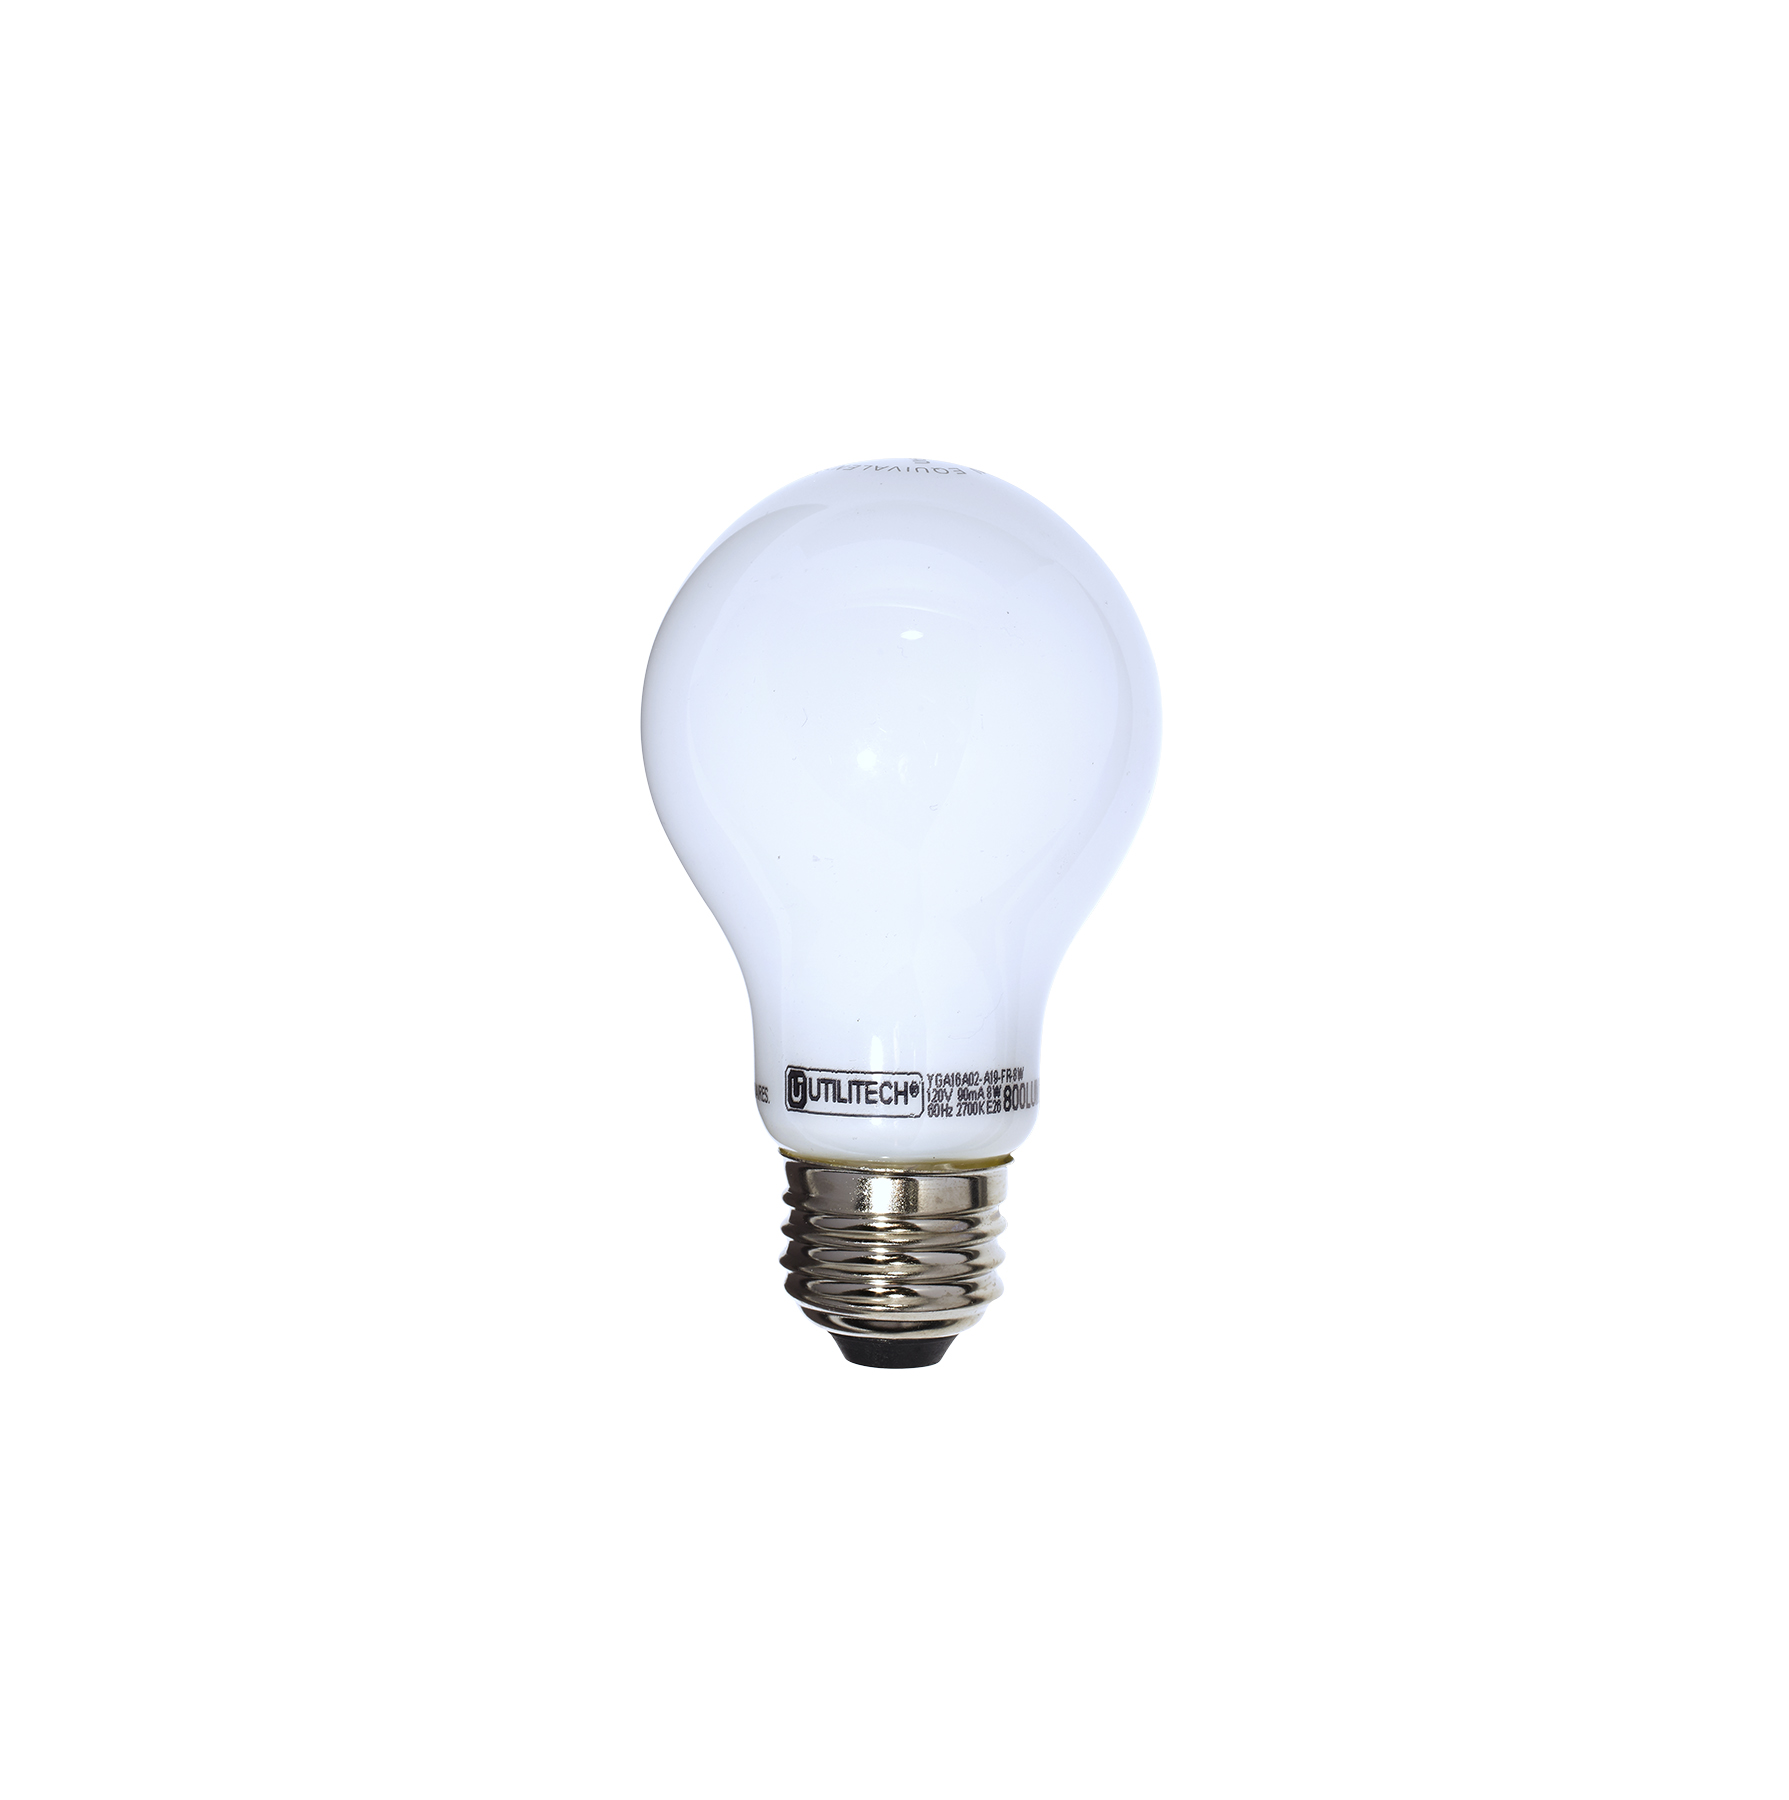 Utilitech soft white LED decorative bulb